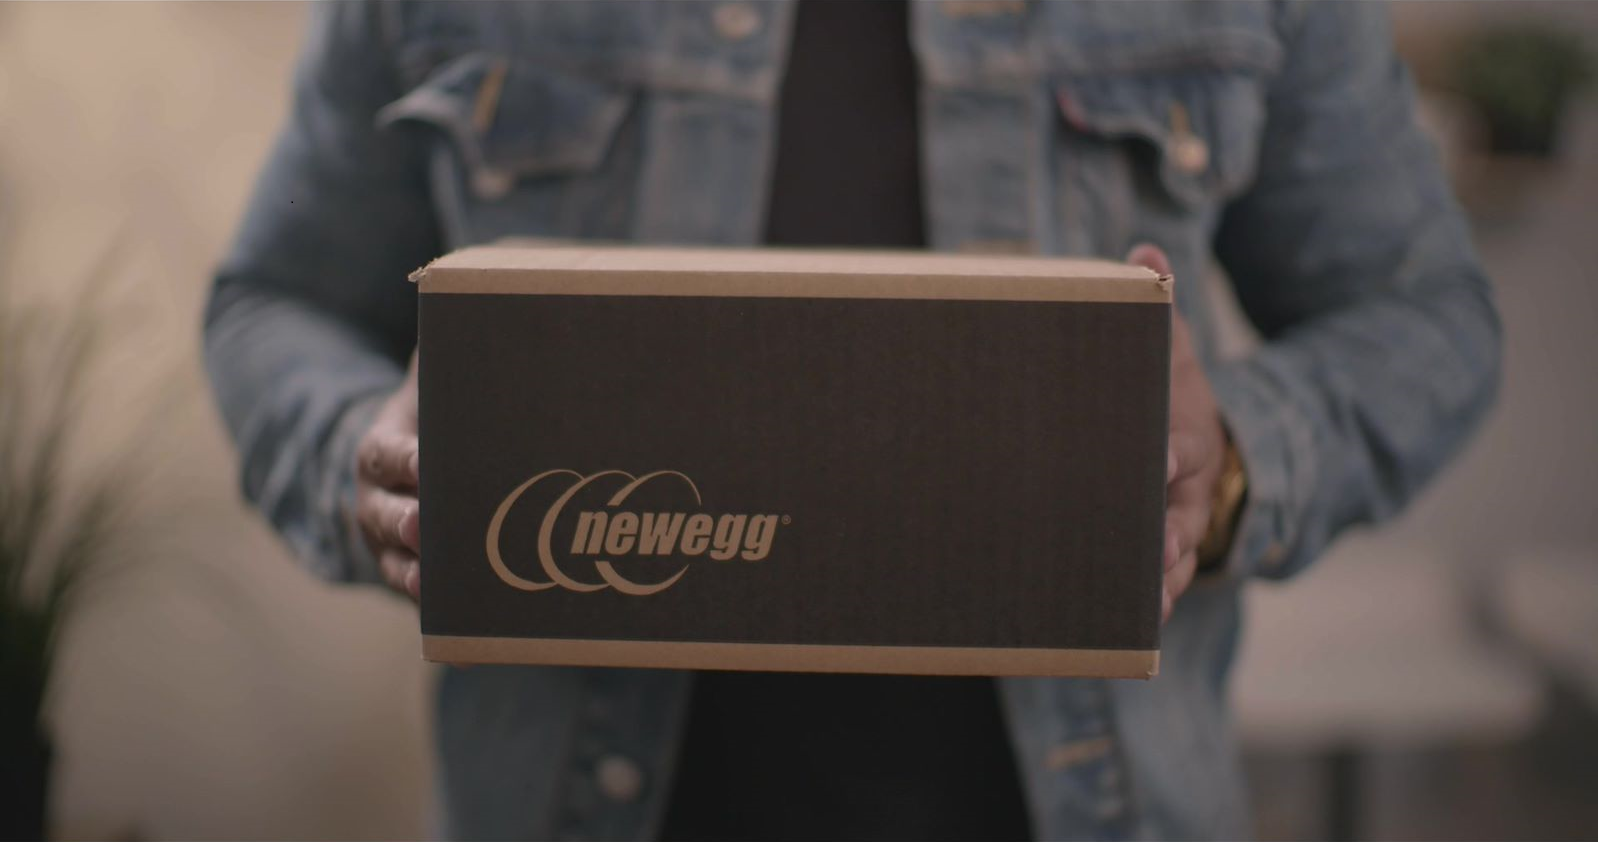 Newegg fulfillment services like Shipped by Newegg (SBN) and Newegg Logistics offer retailers cost-saving options.